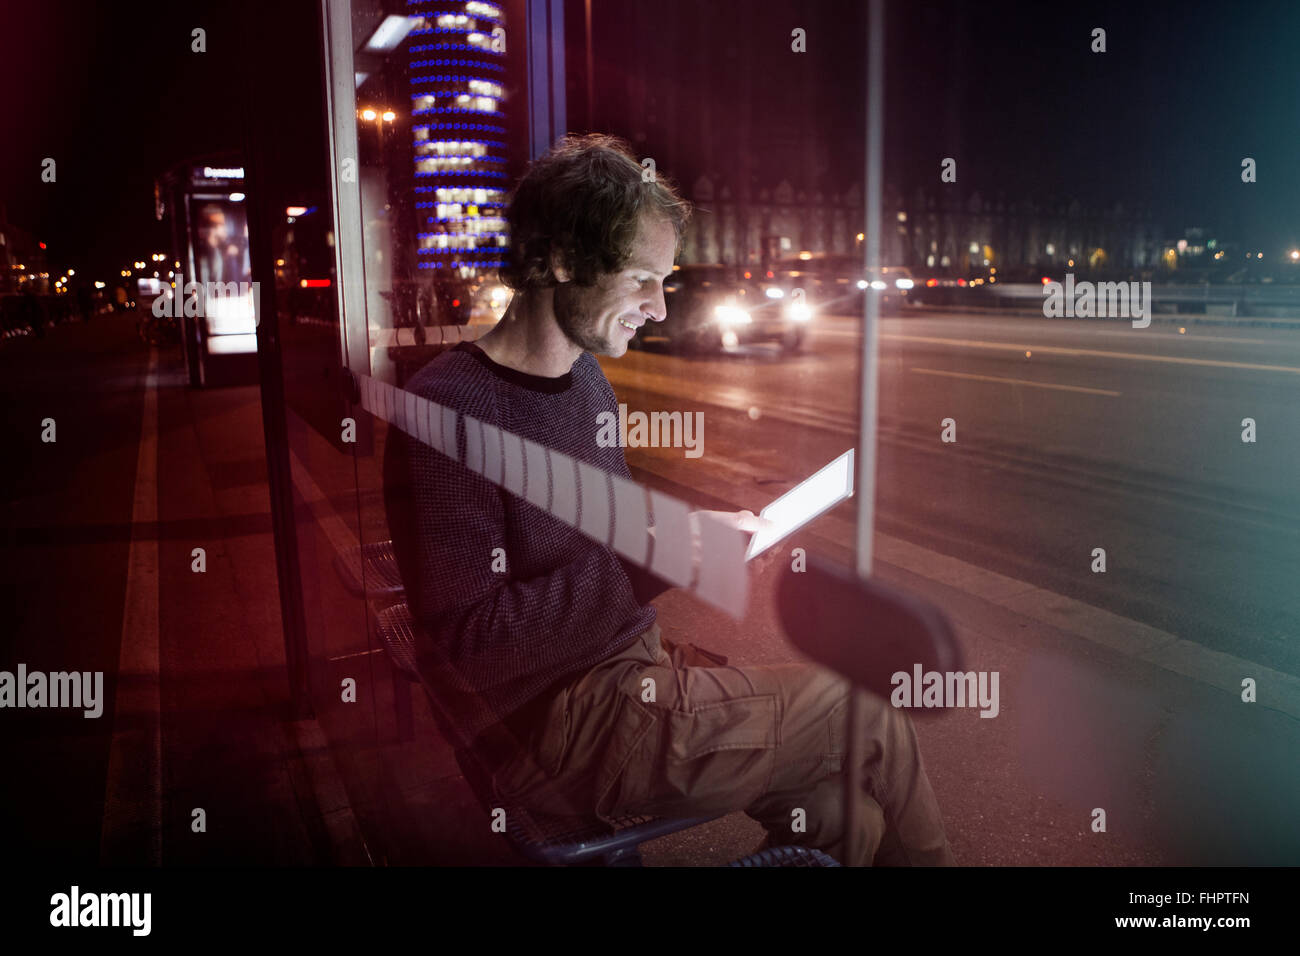 Germany, Munich, man with headphones sitting at bus stop using digital tablet at night - Stock Image